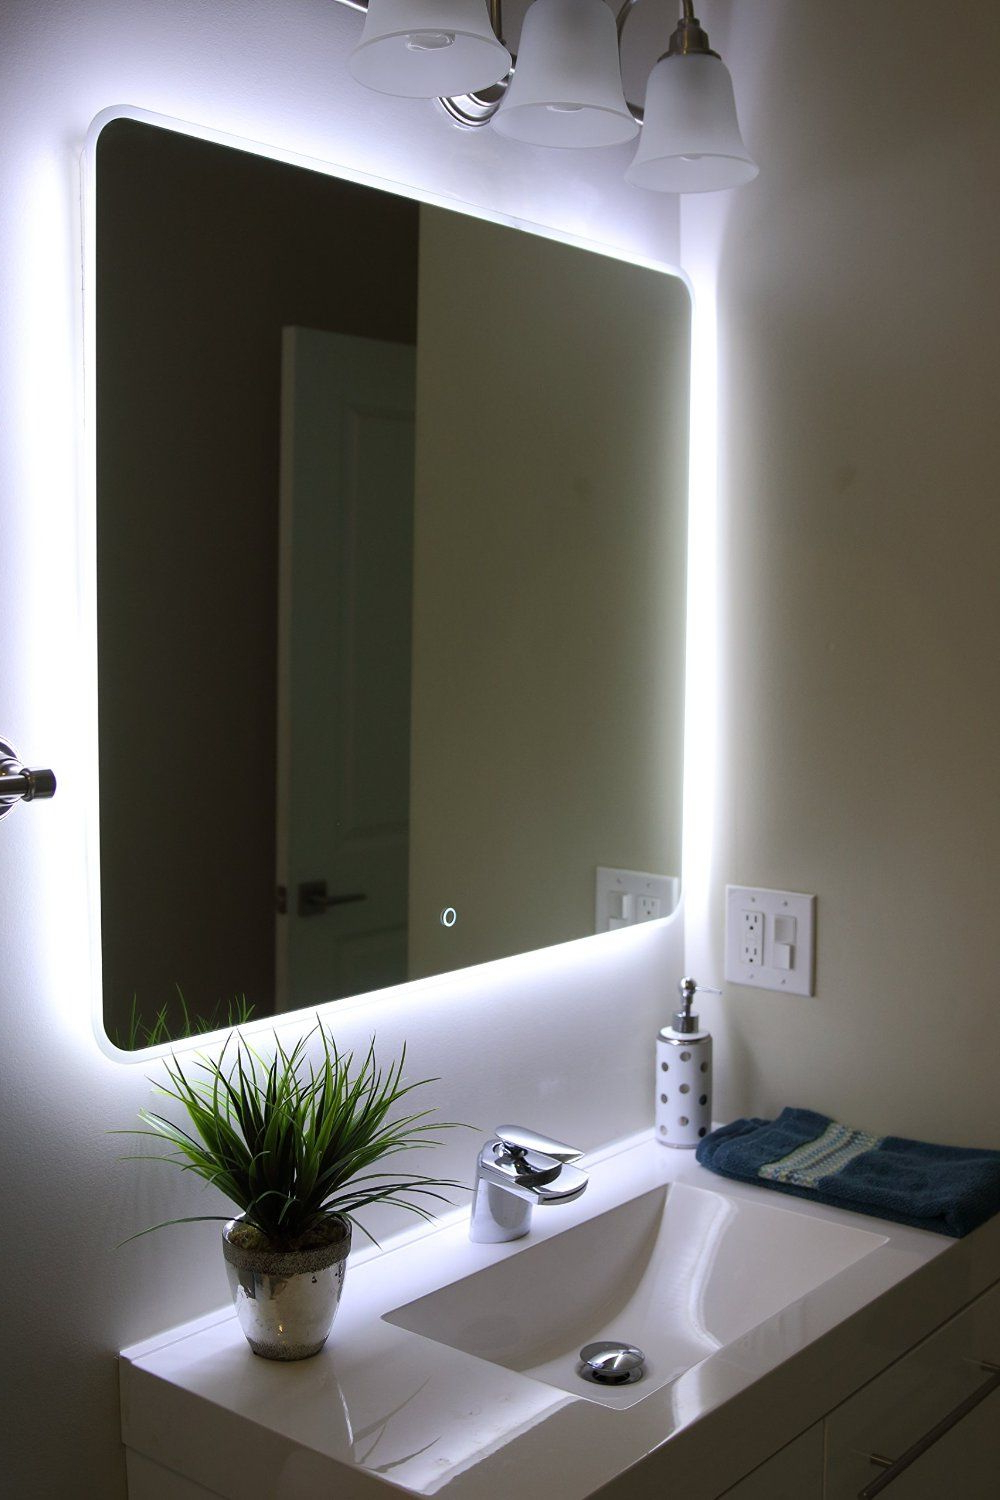 Fashionable Windbay Backlit Led Light Bathroom Vanity Sink Mirror (View 7 of 20)